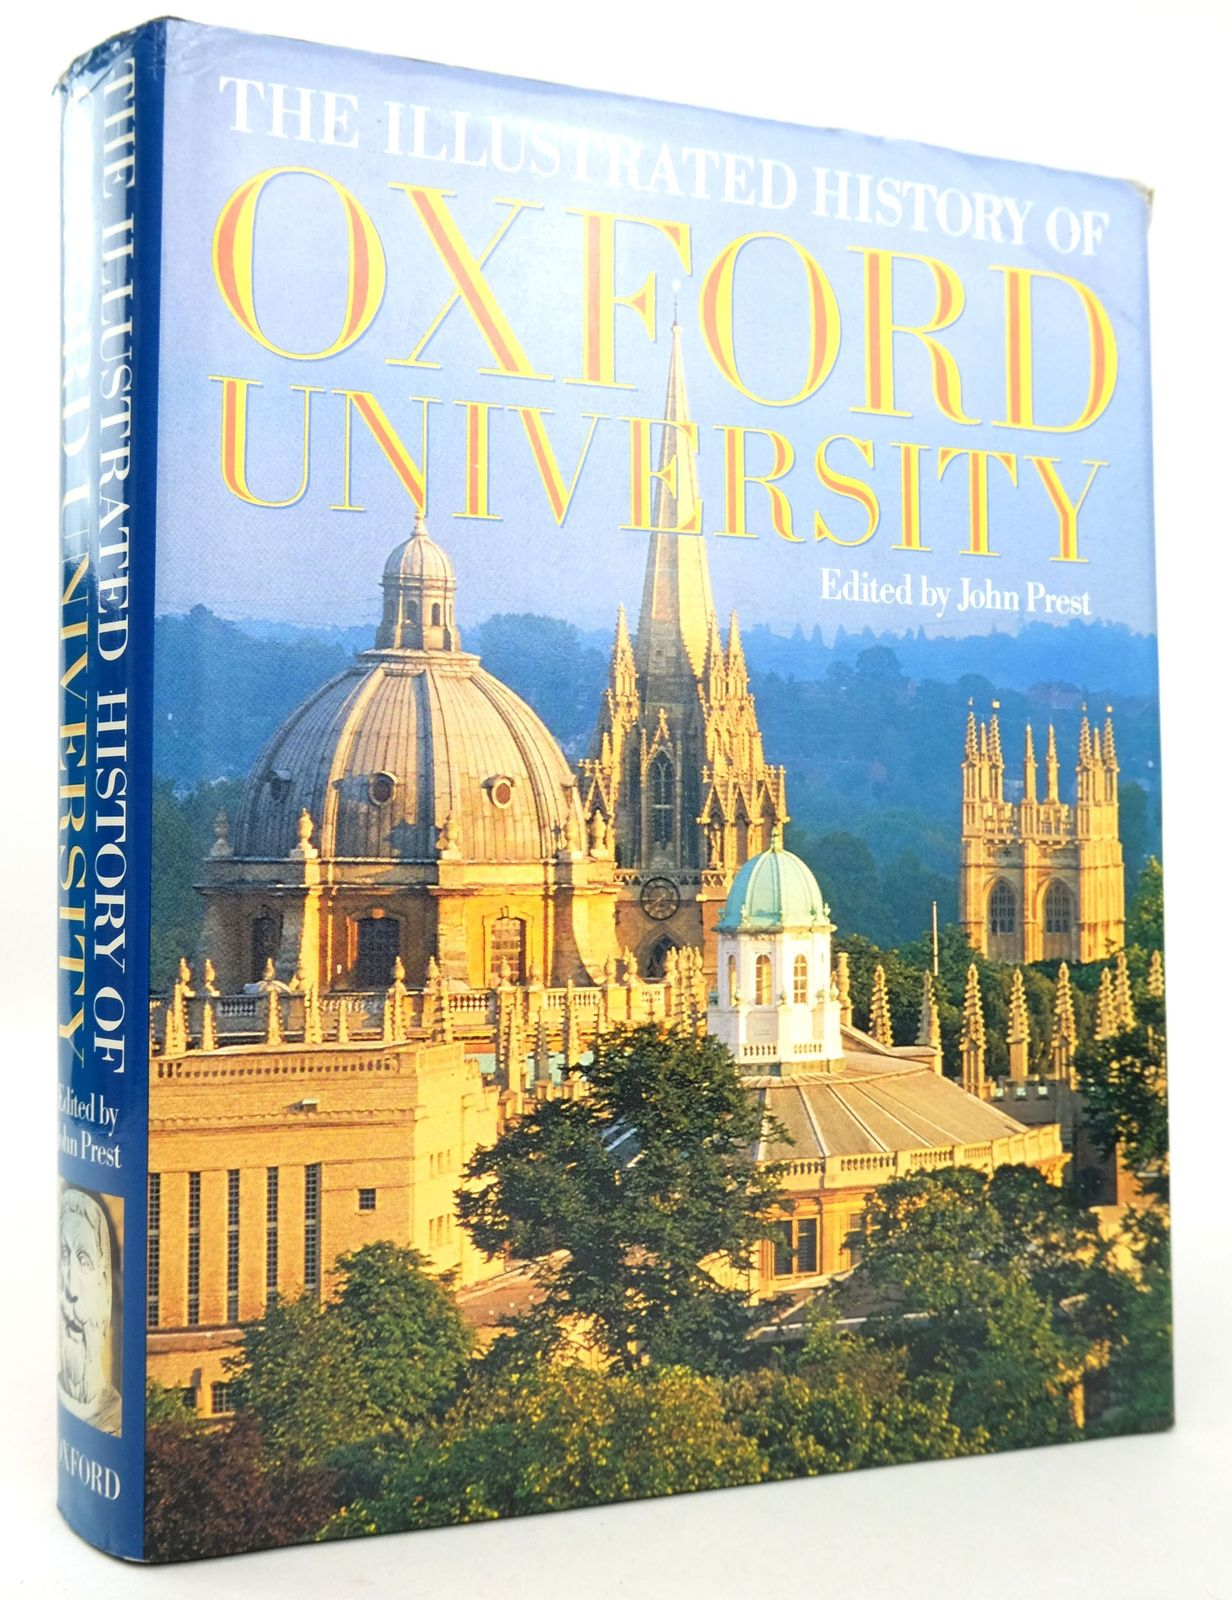 Photo of THE ILLUSTRATED HISTORY OF OXFORD UNIVERSITY- Stock Number: 1819208